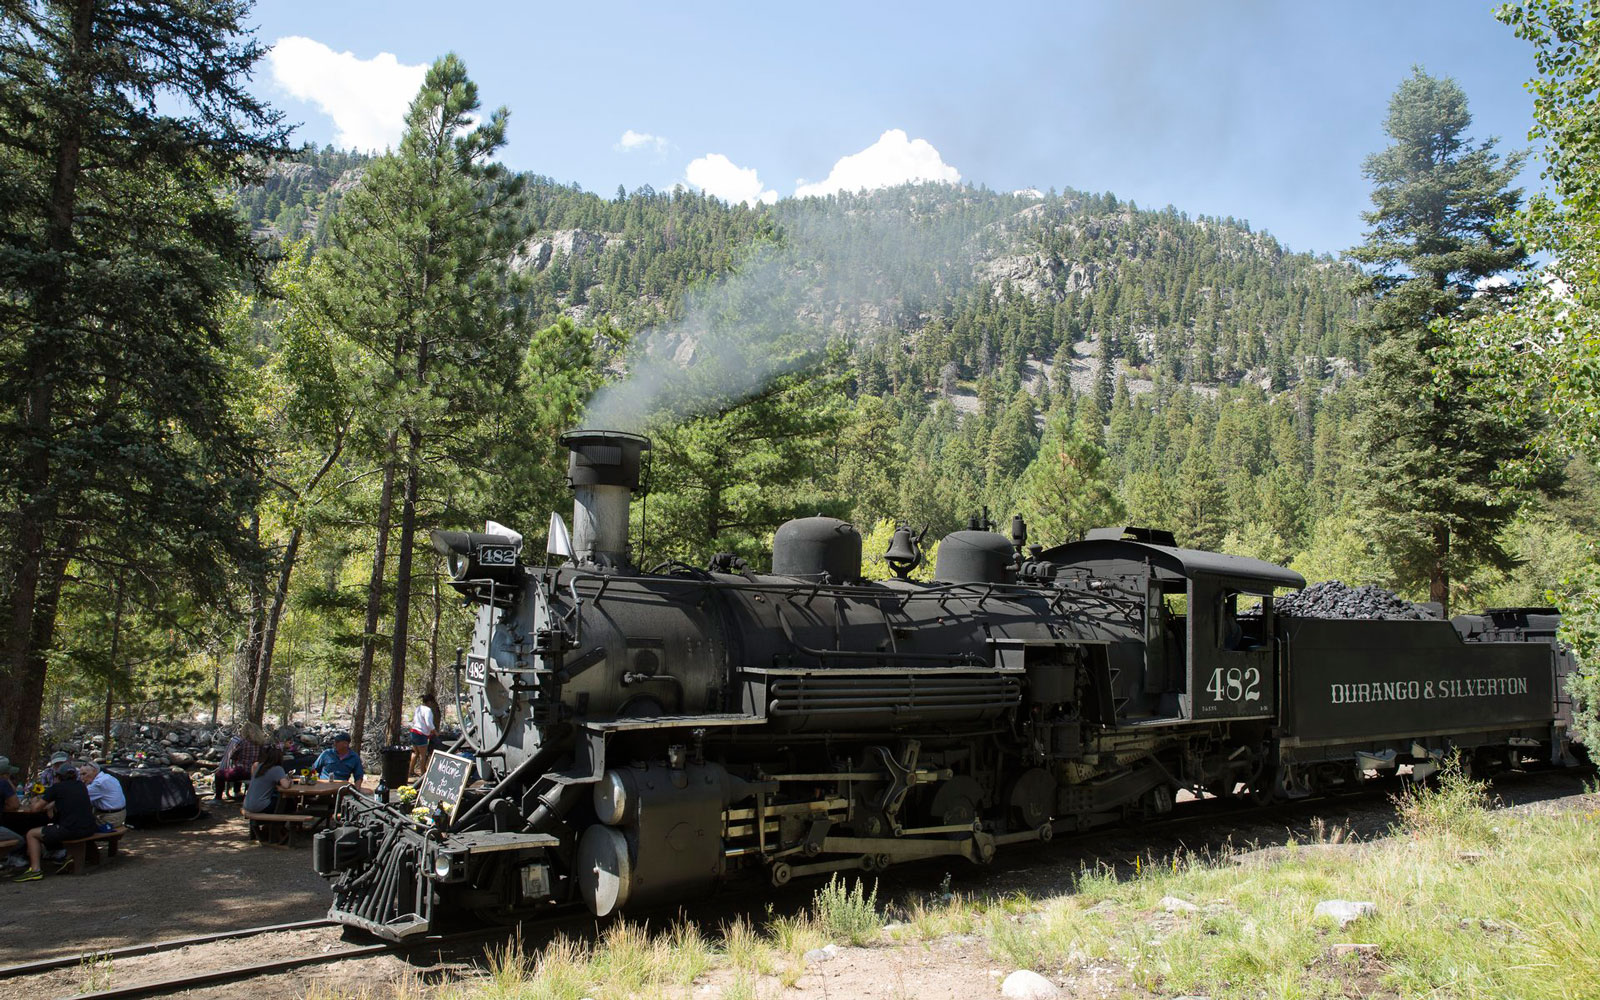 This Brew Train Serves Craft Beers and Scenic Views of the Colorado Wilderness